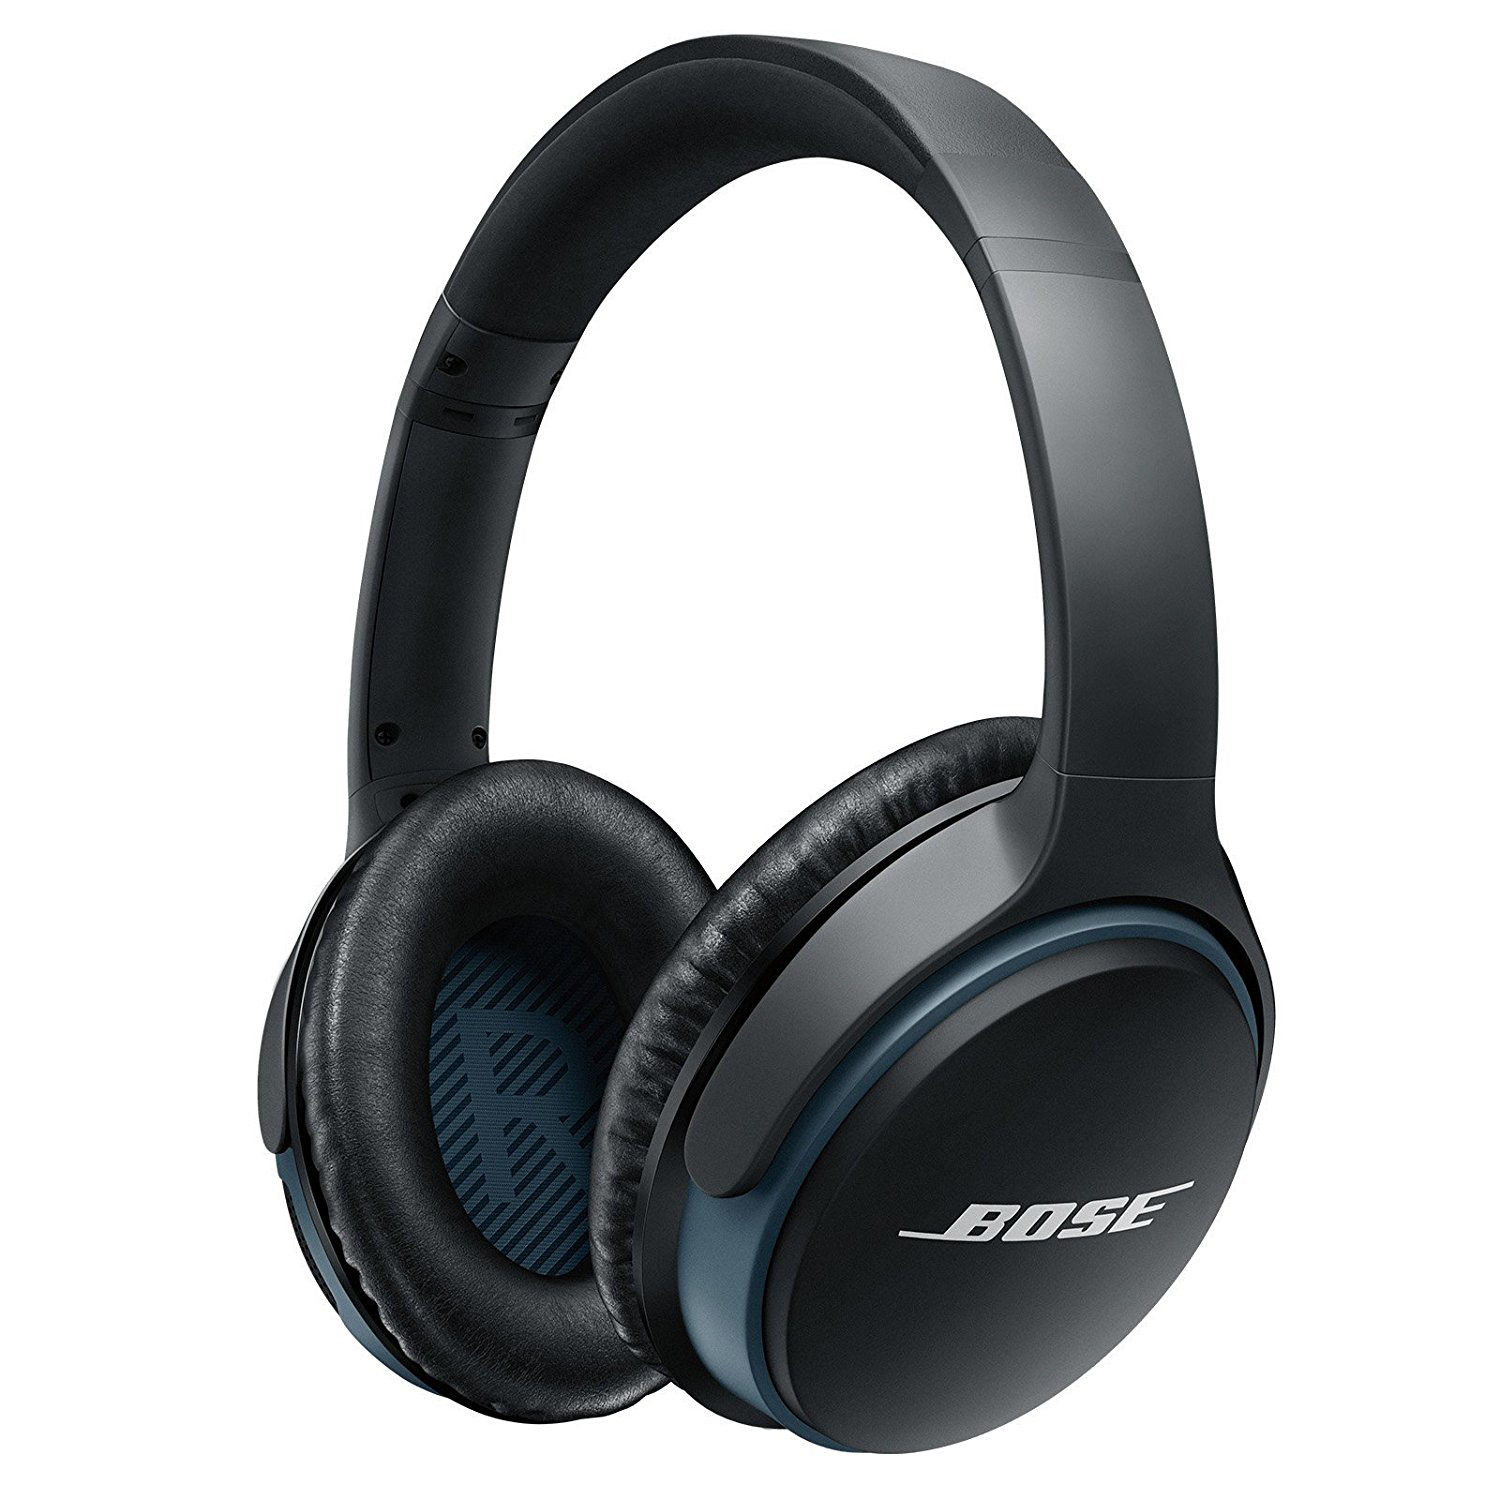 Bose SoundLink II Wireless